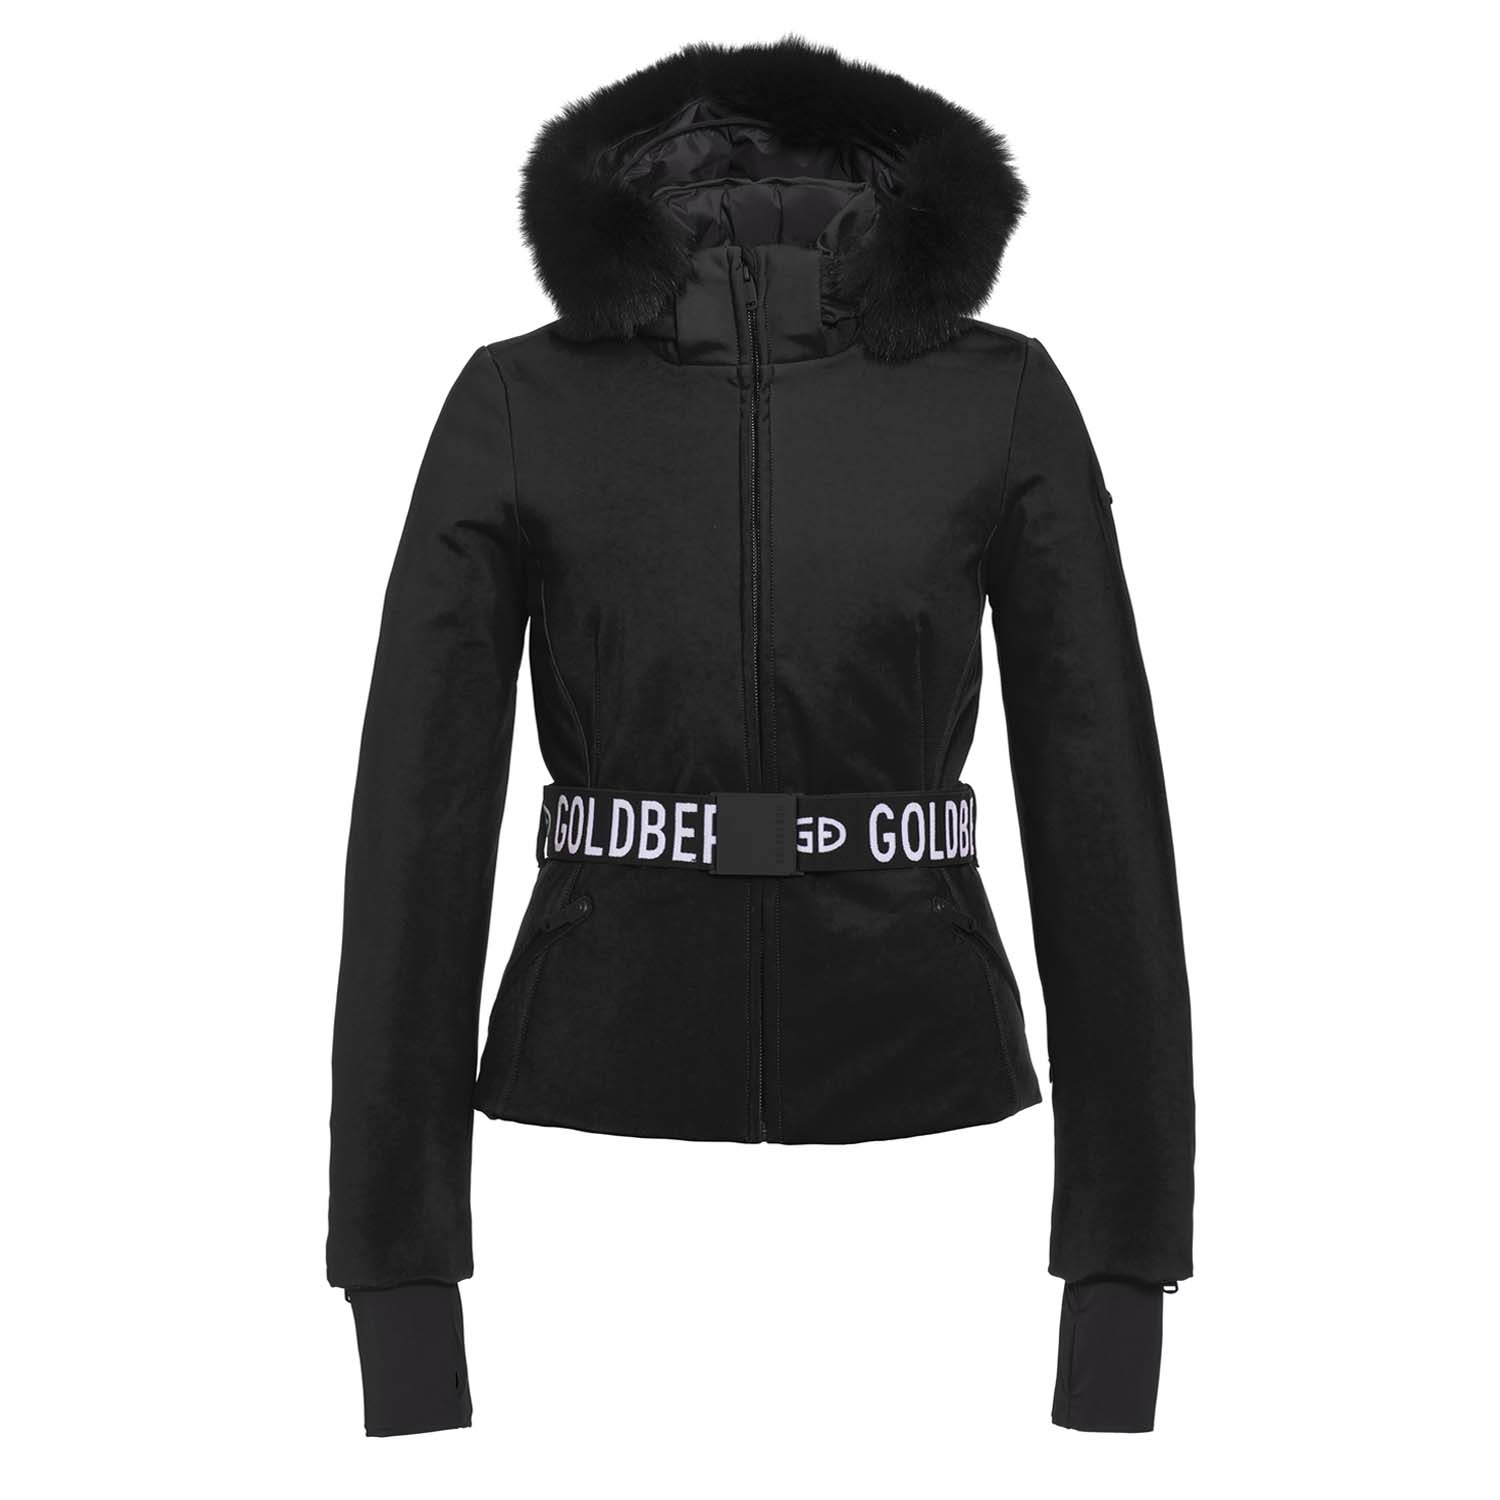 Goldbergh Hida Faux Fur Ski Jacket Black 2021